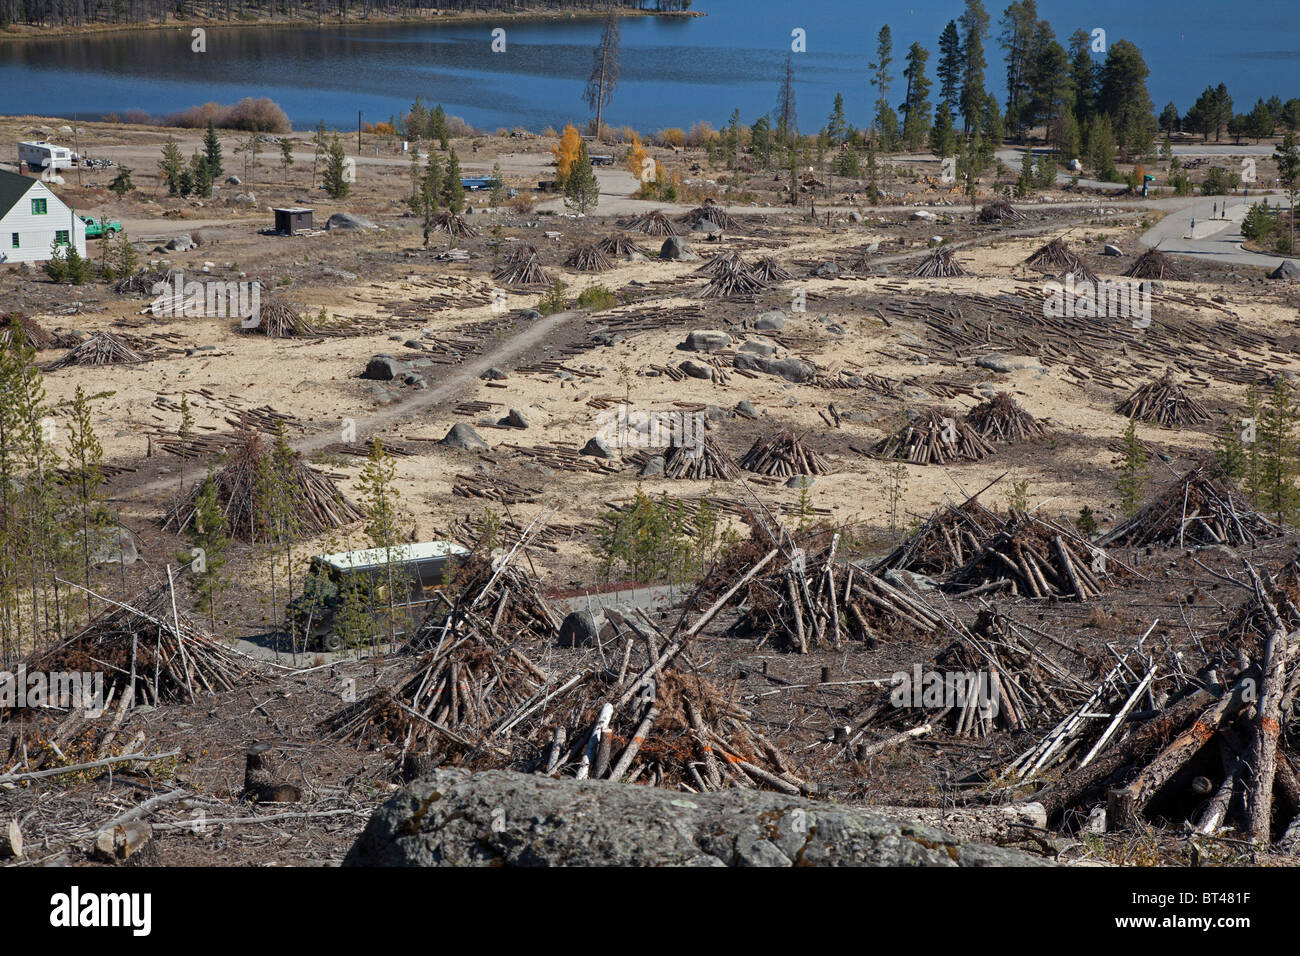 Pine Trees Cut Down After They Were Killed by Mountain Pine Beetle - Stock Image